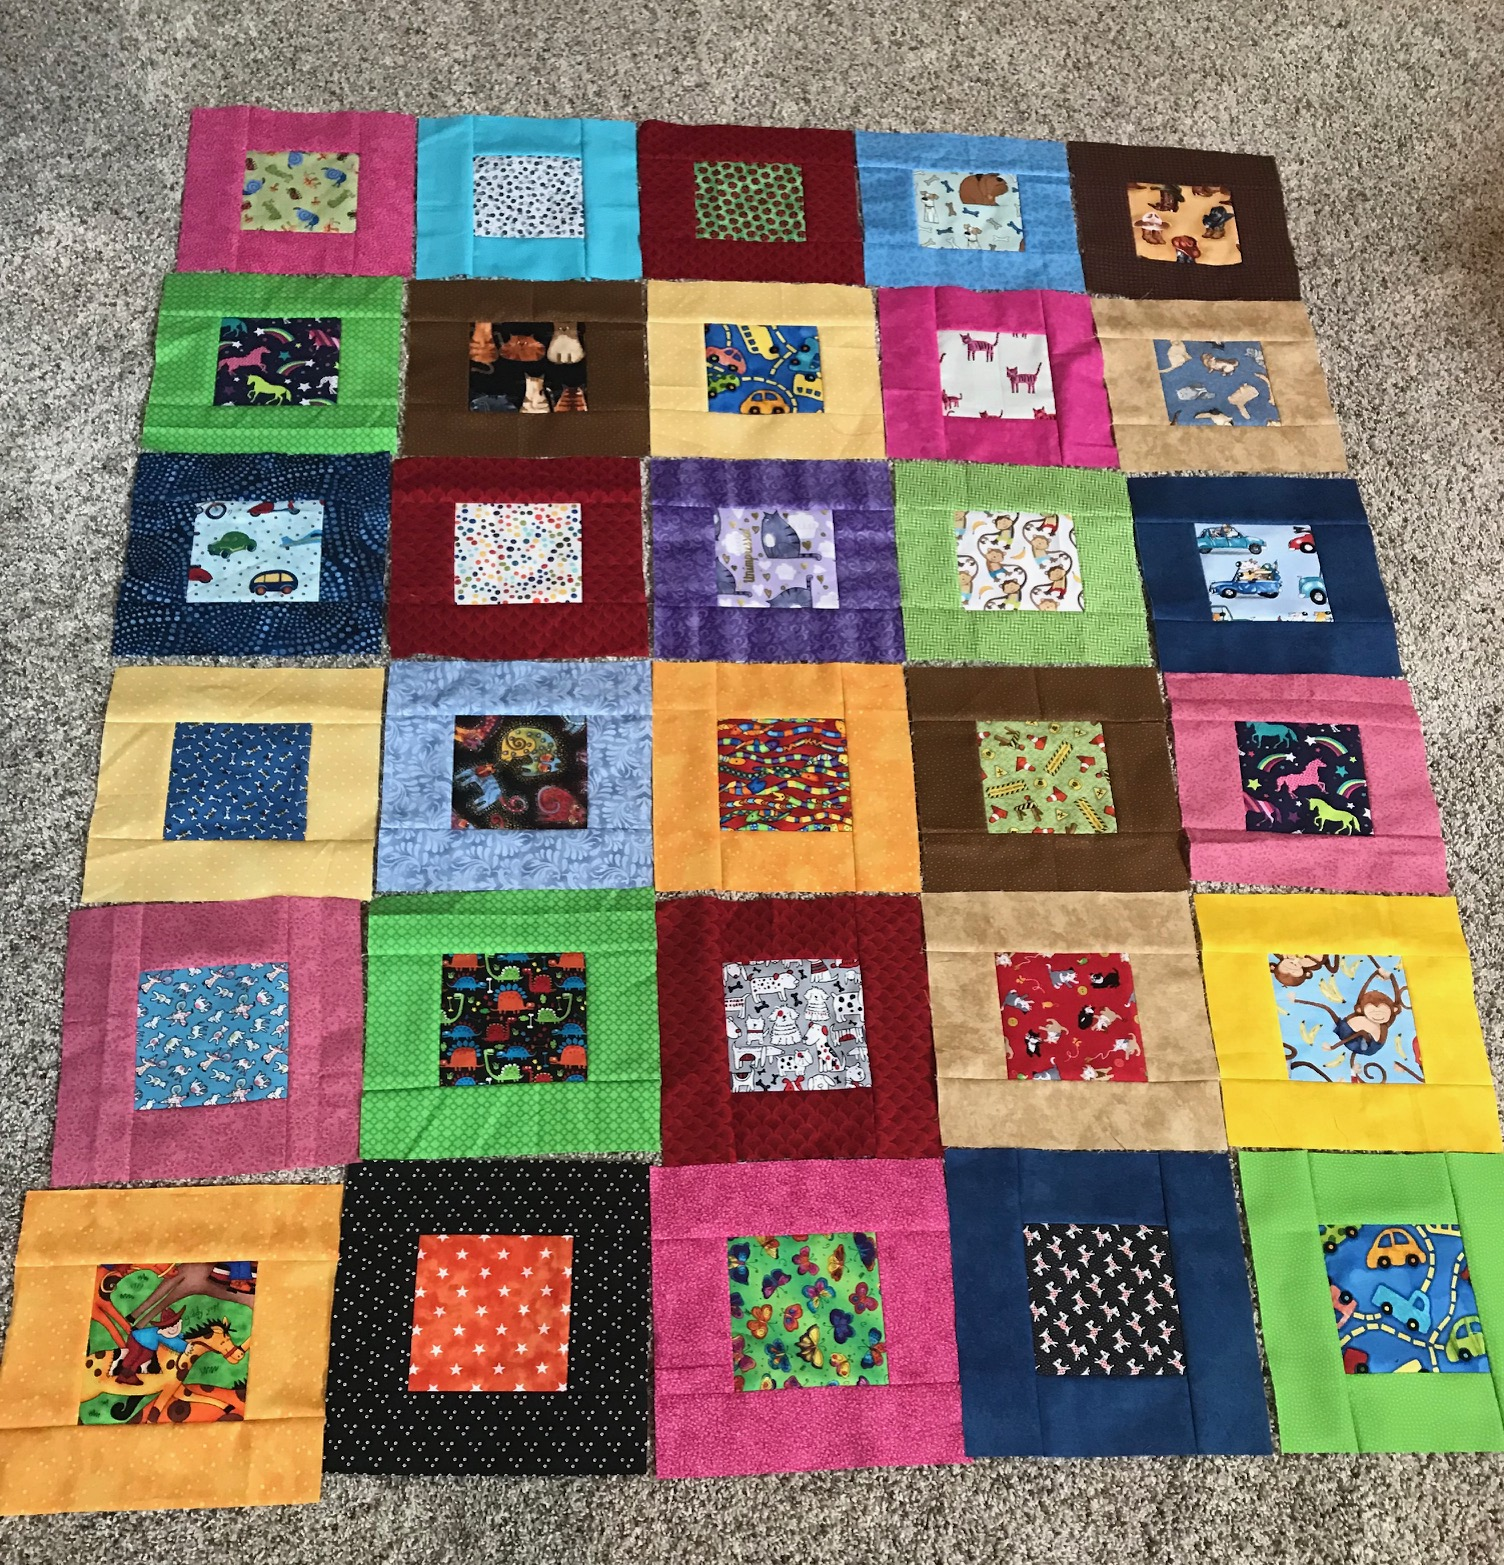 Quilt Und Patchwork Pakete Quilting Blogs What Are Quilters Blogging About Today 2